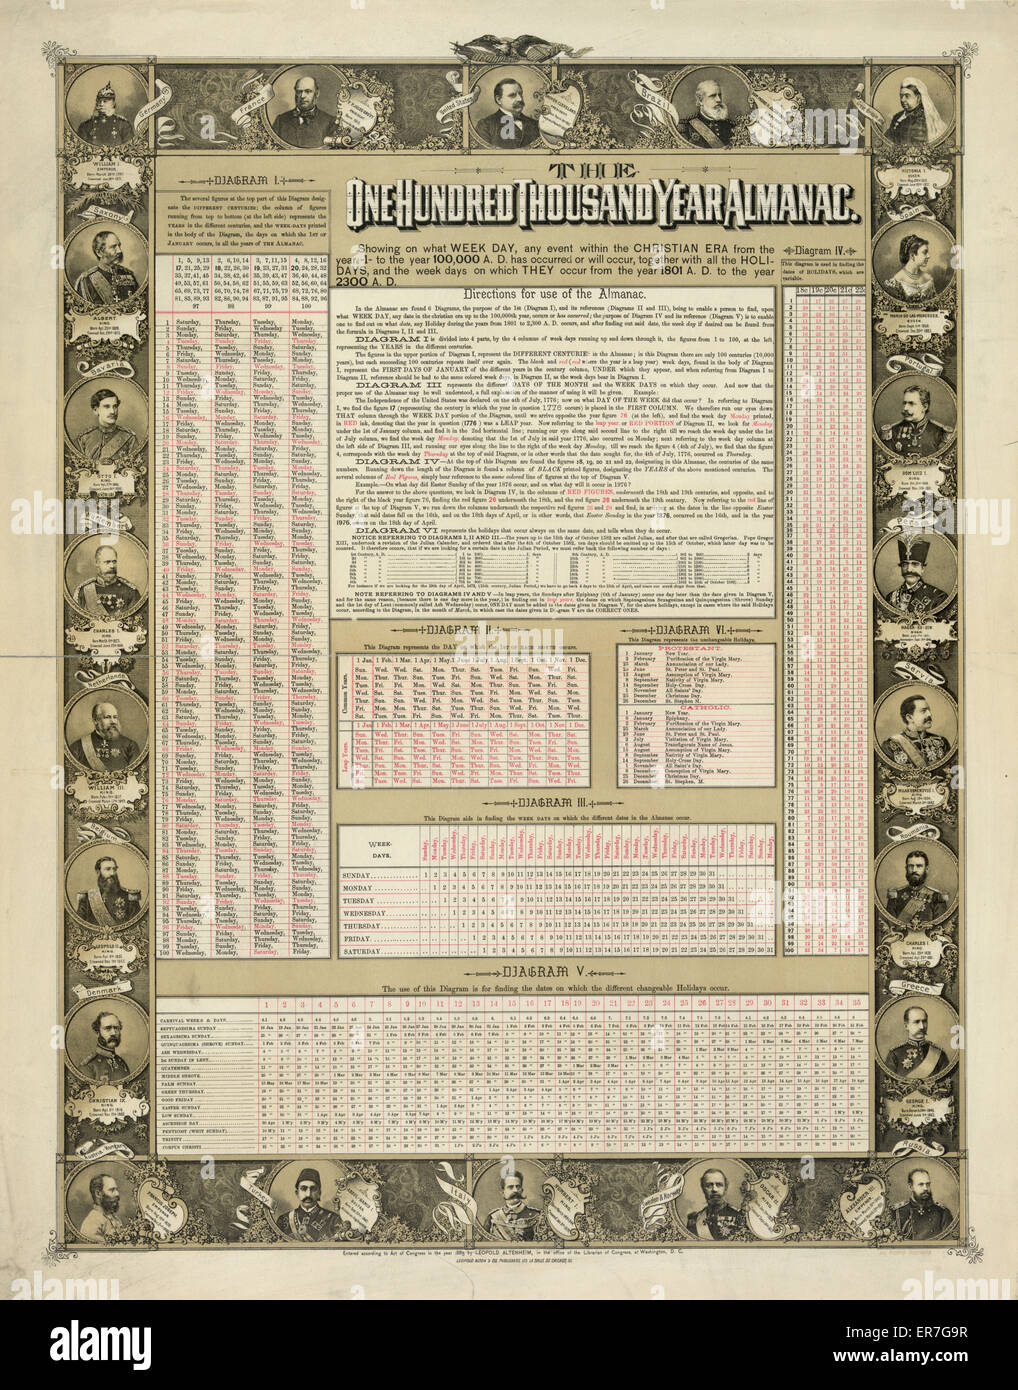 The one hundred thousand year almanac. Date c1886 Nov. 24. - Stock Image